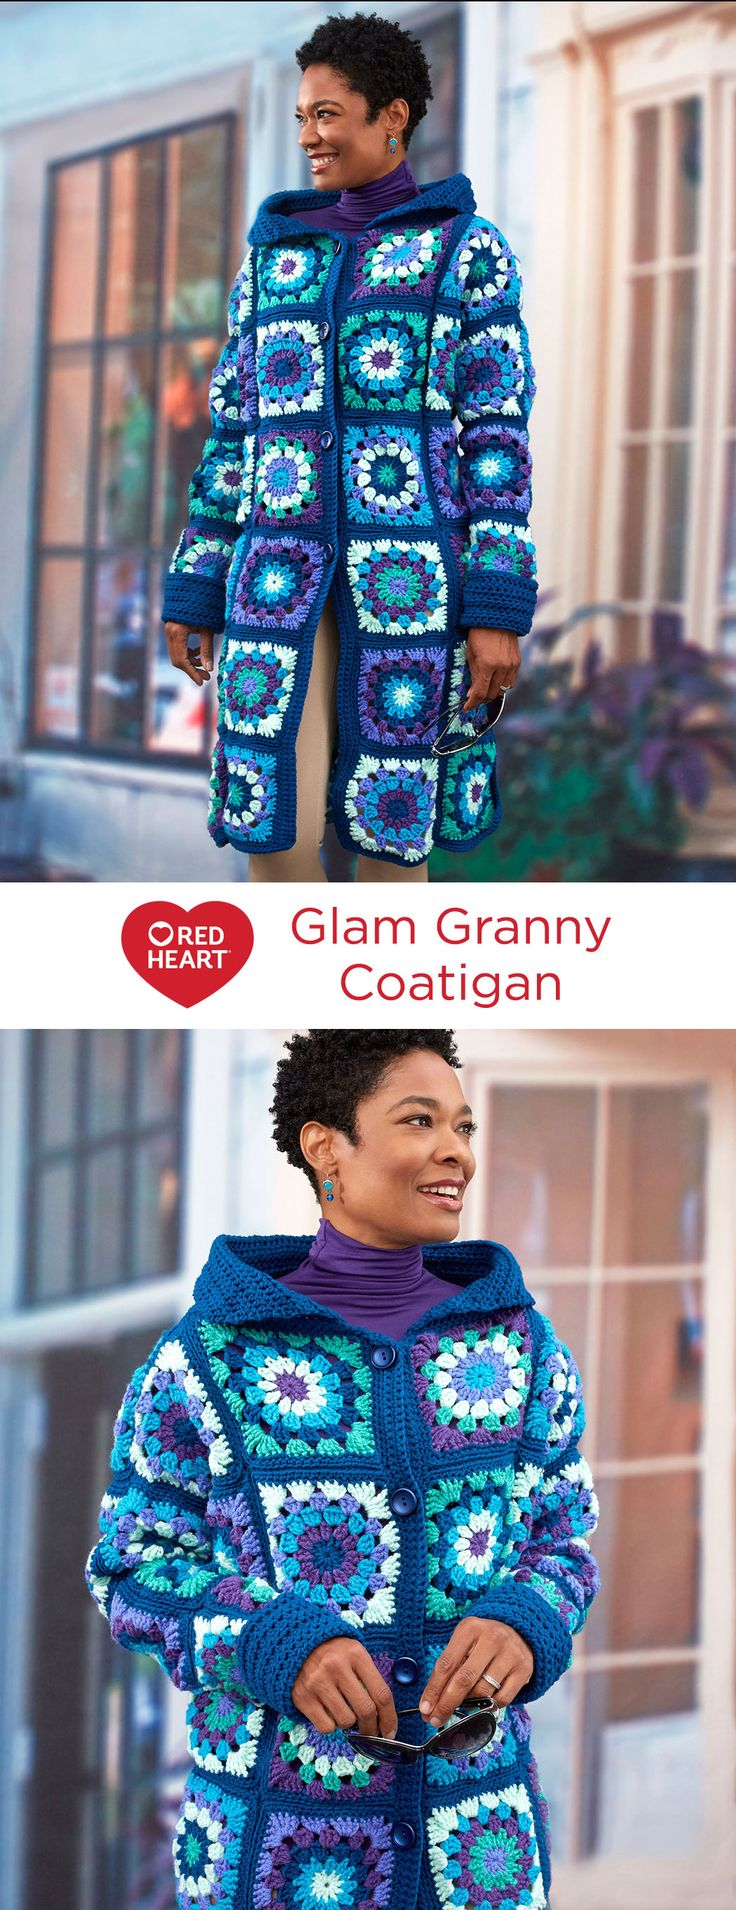 Glam Granny Coatigan Free Crochet Pattern in Red Heart Yarns -- Choosing regal shades of blue, purple and jade turns the crochet granny square into a fashion statement. We used six shades of With Love, for a sweater coat that is fun and comfy to wear. Pattern is given to fit small to 3X sizes.